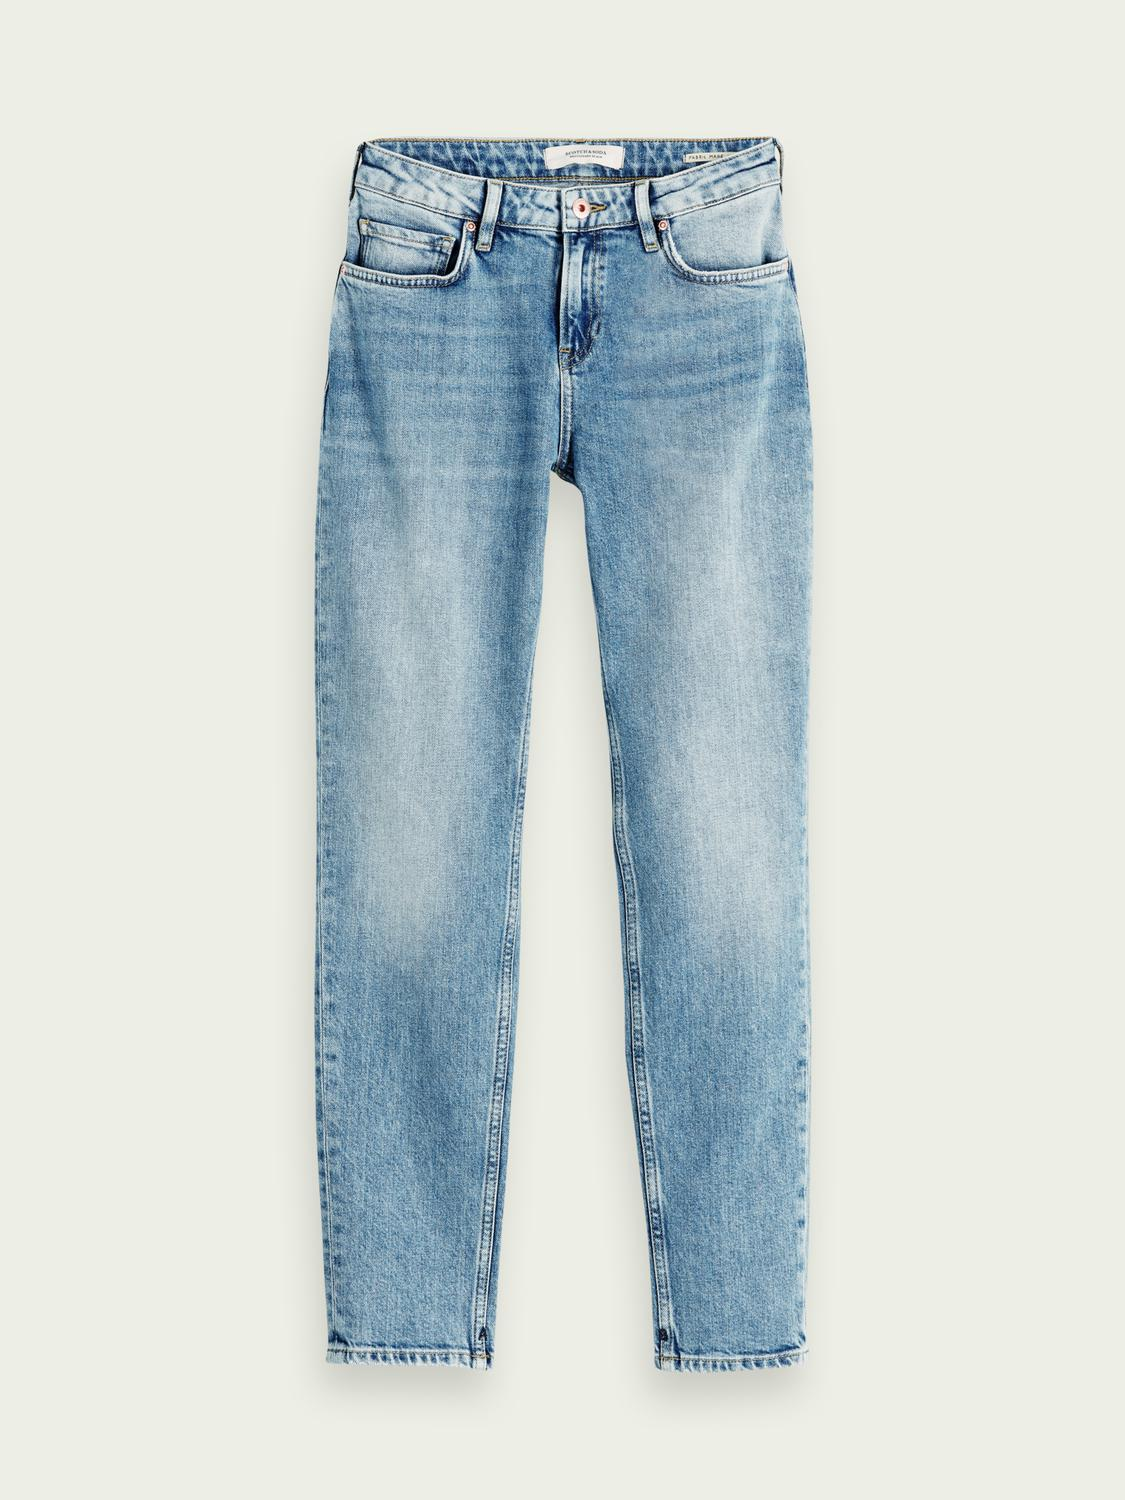 The Keeper - Turquoise Mid rise slim fit 5